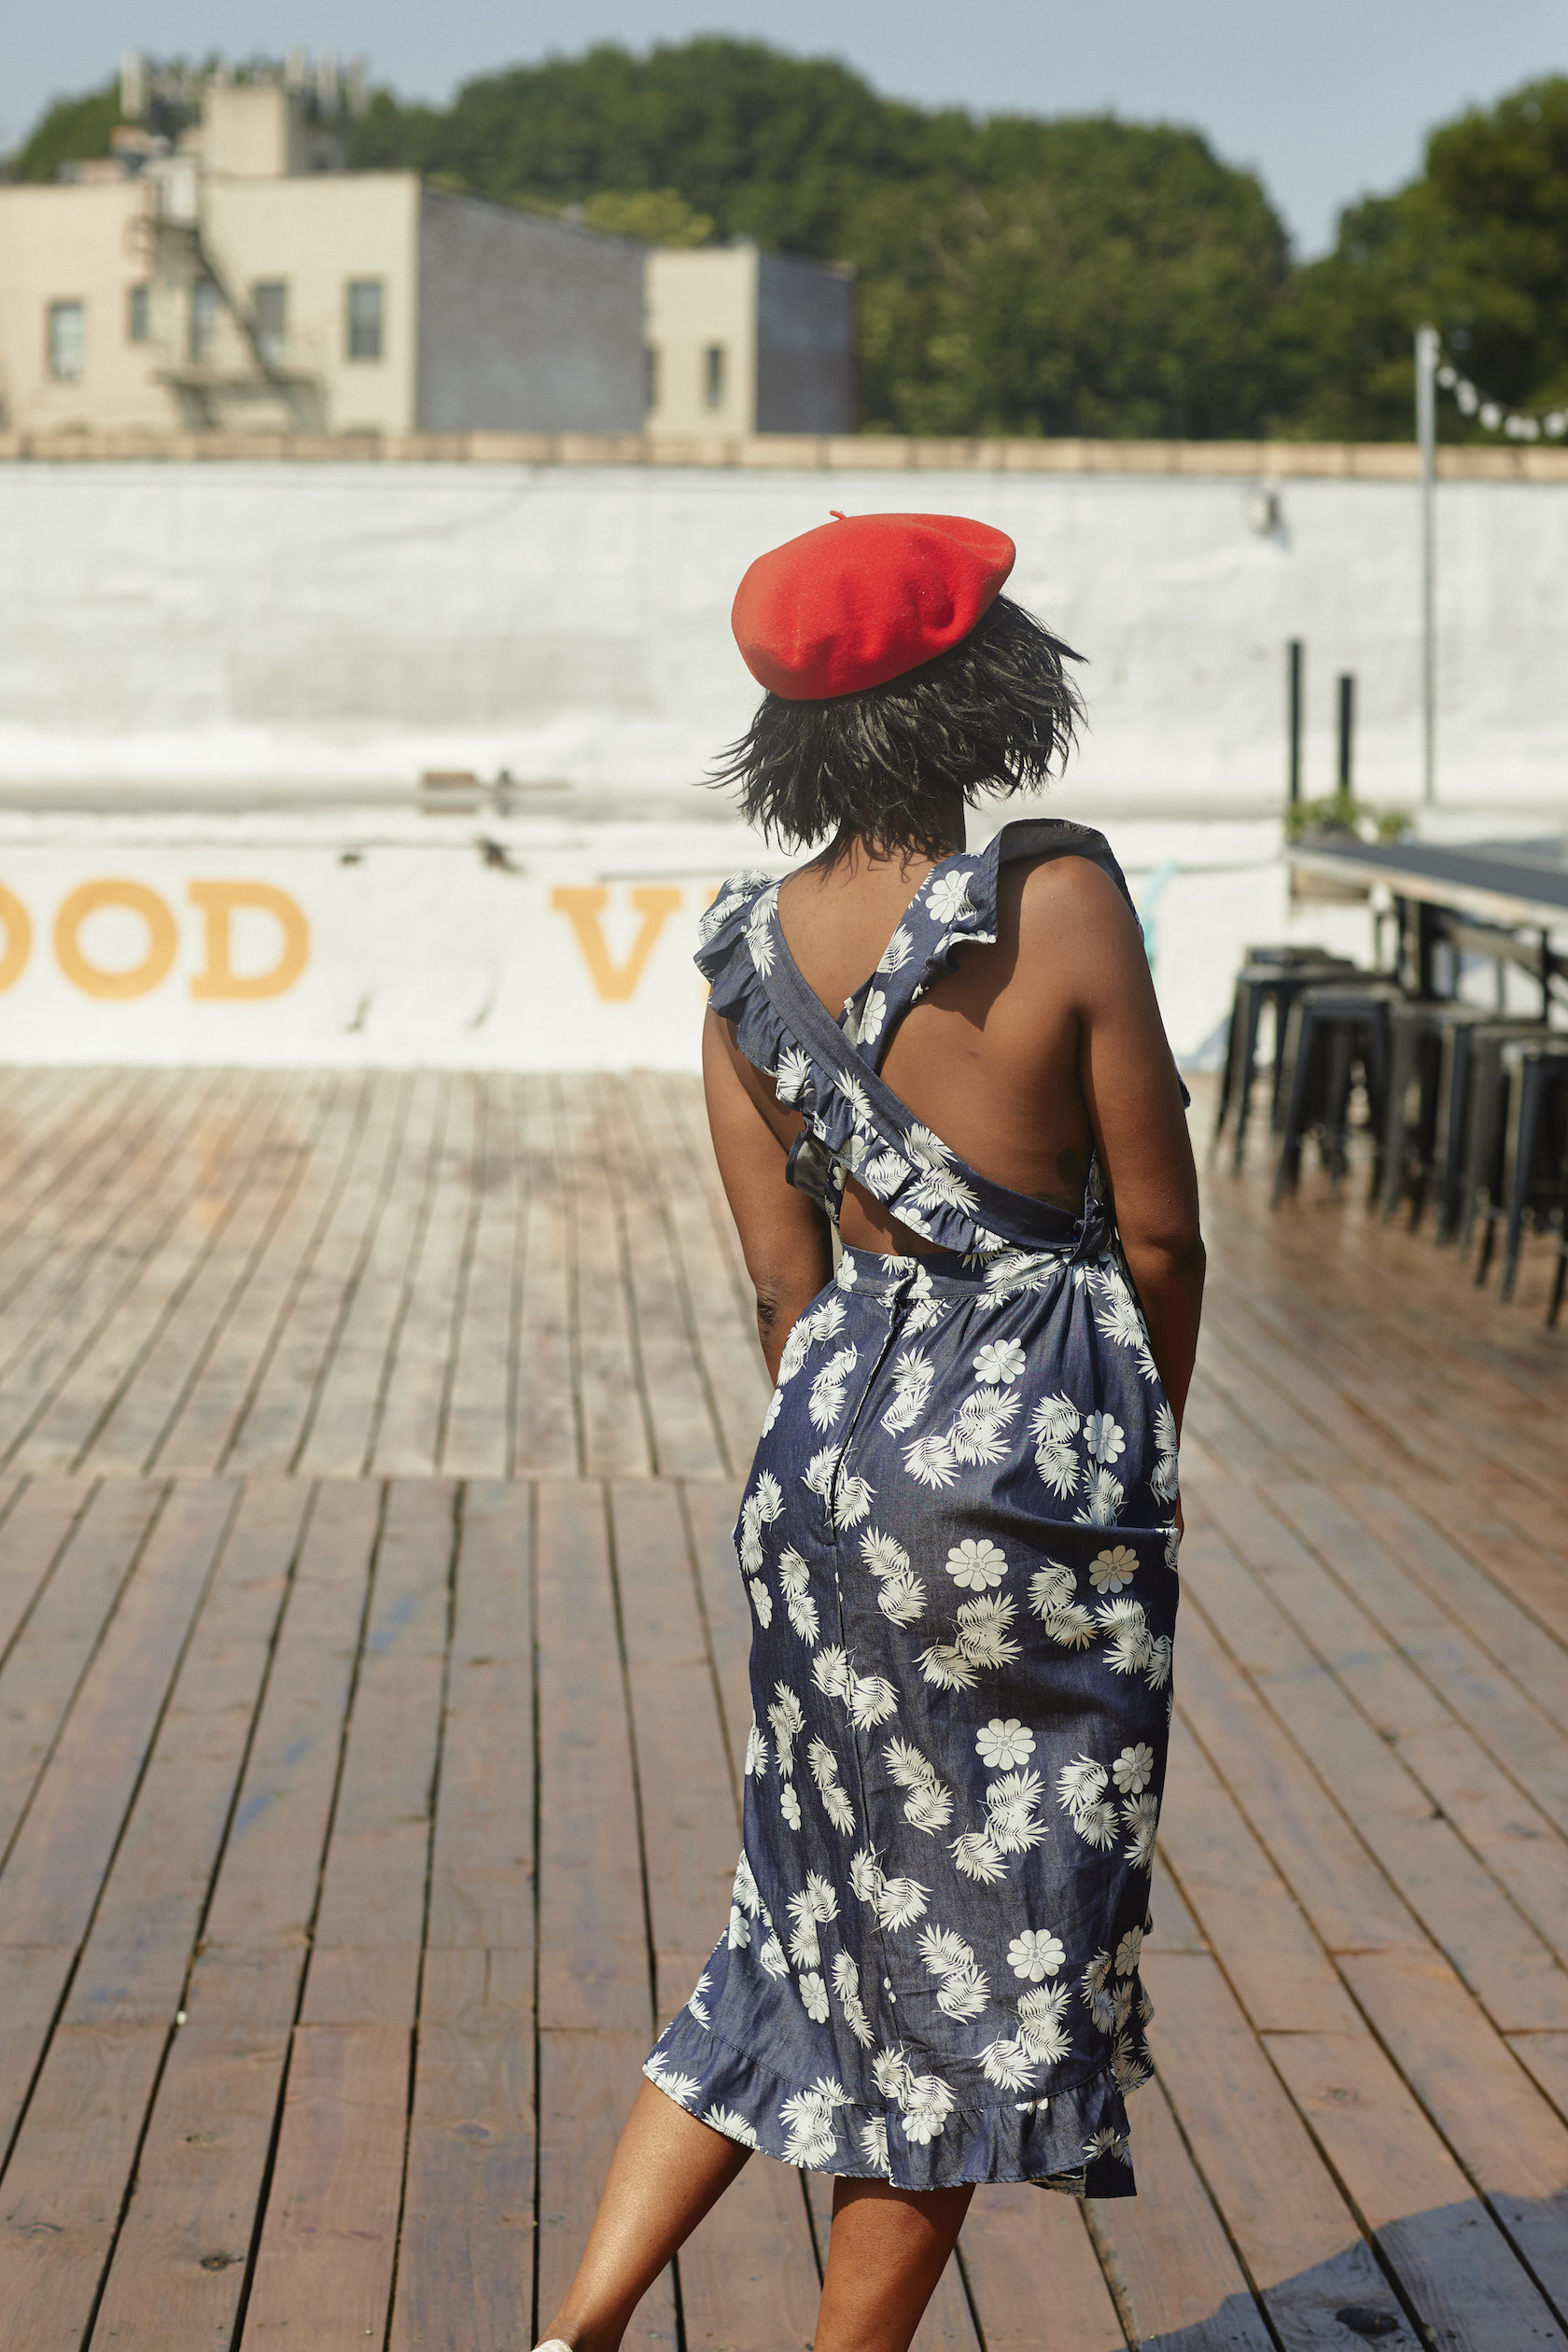 Criss cross denim print dress // A Week Of Outfits With Dominique Drakeford, Founder Of Melanin & Sustainable Style on The Good Trade